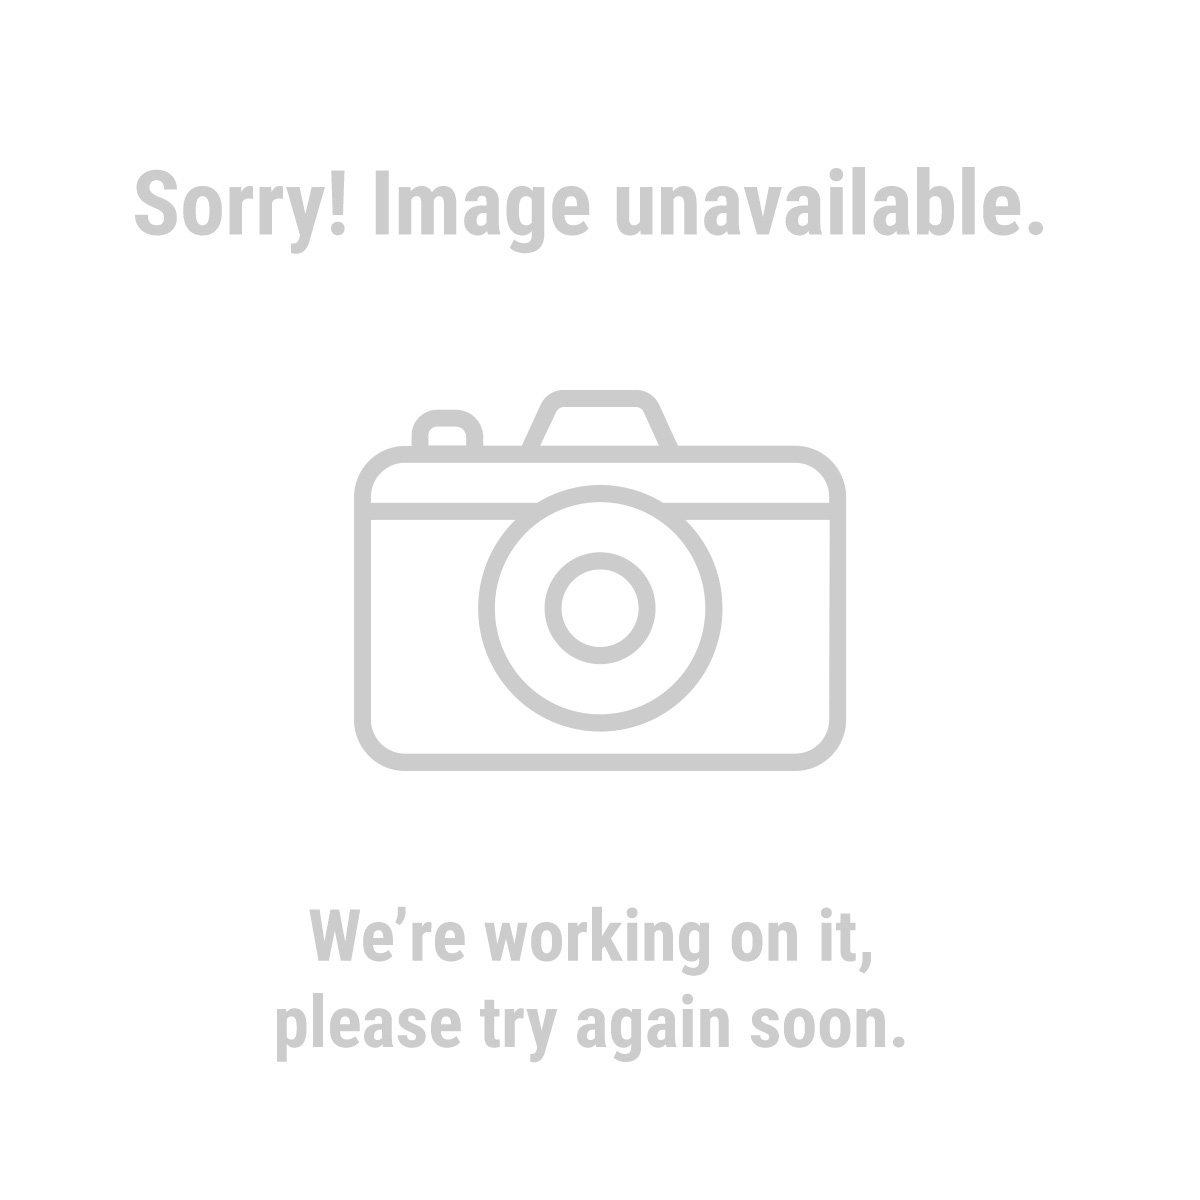 Noise Canceling Electronic Ear Muffs